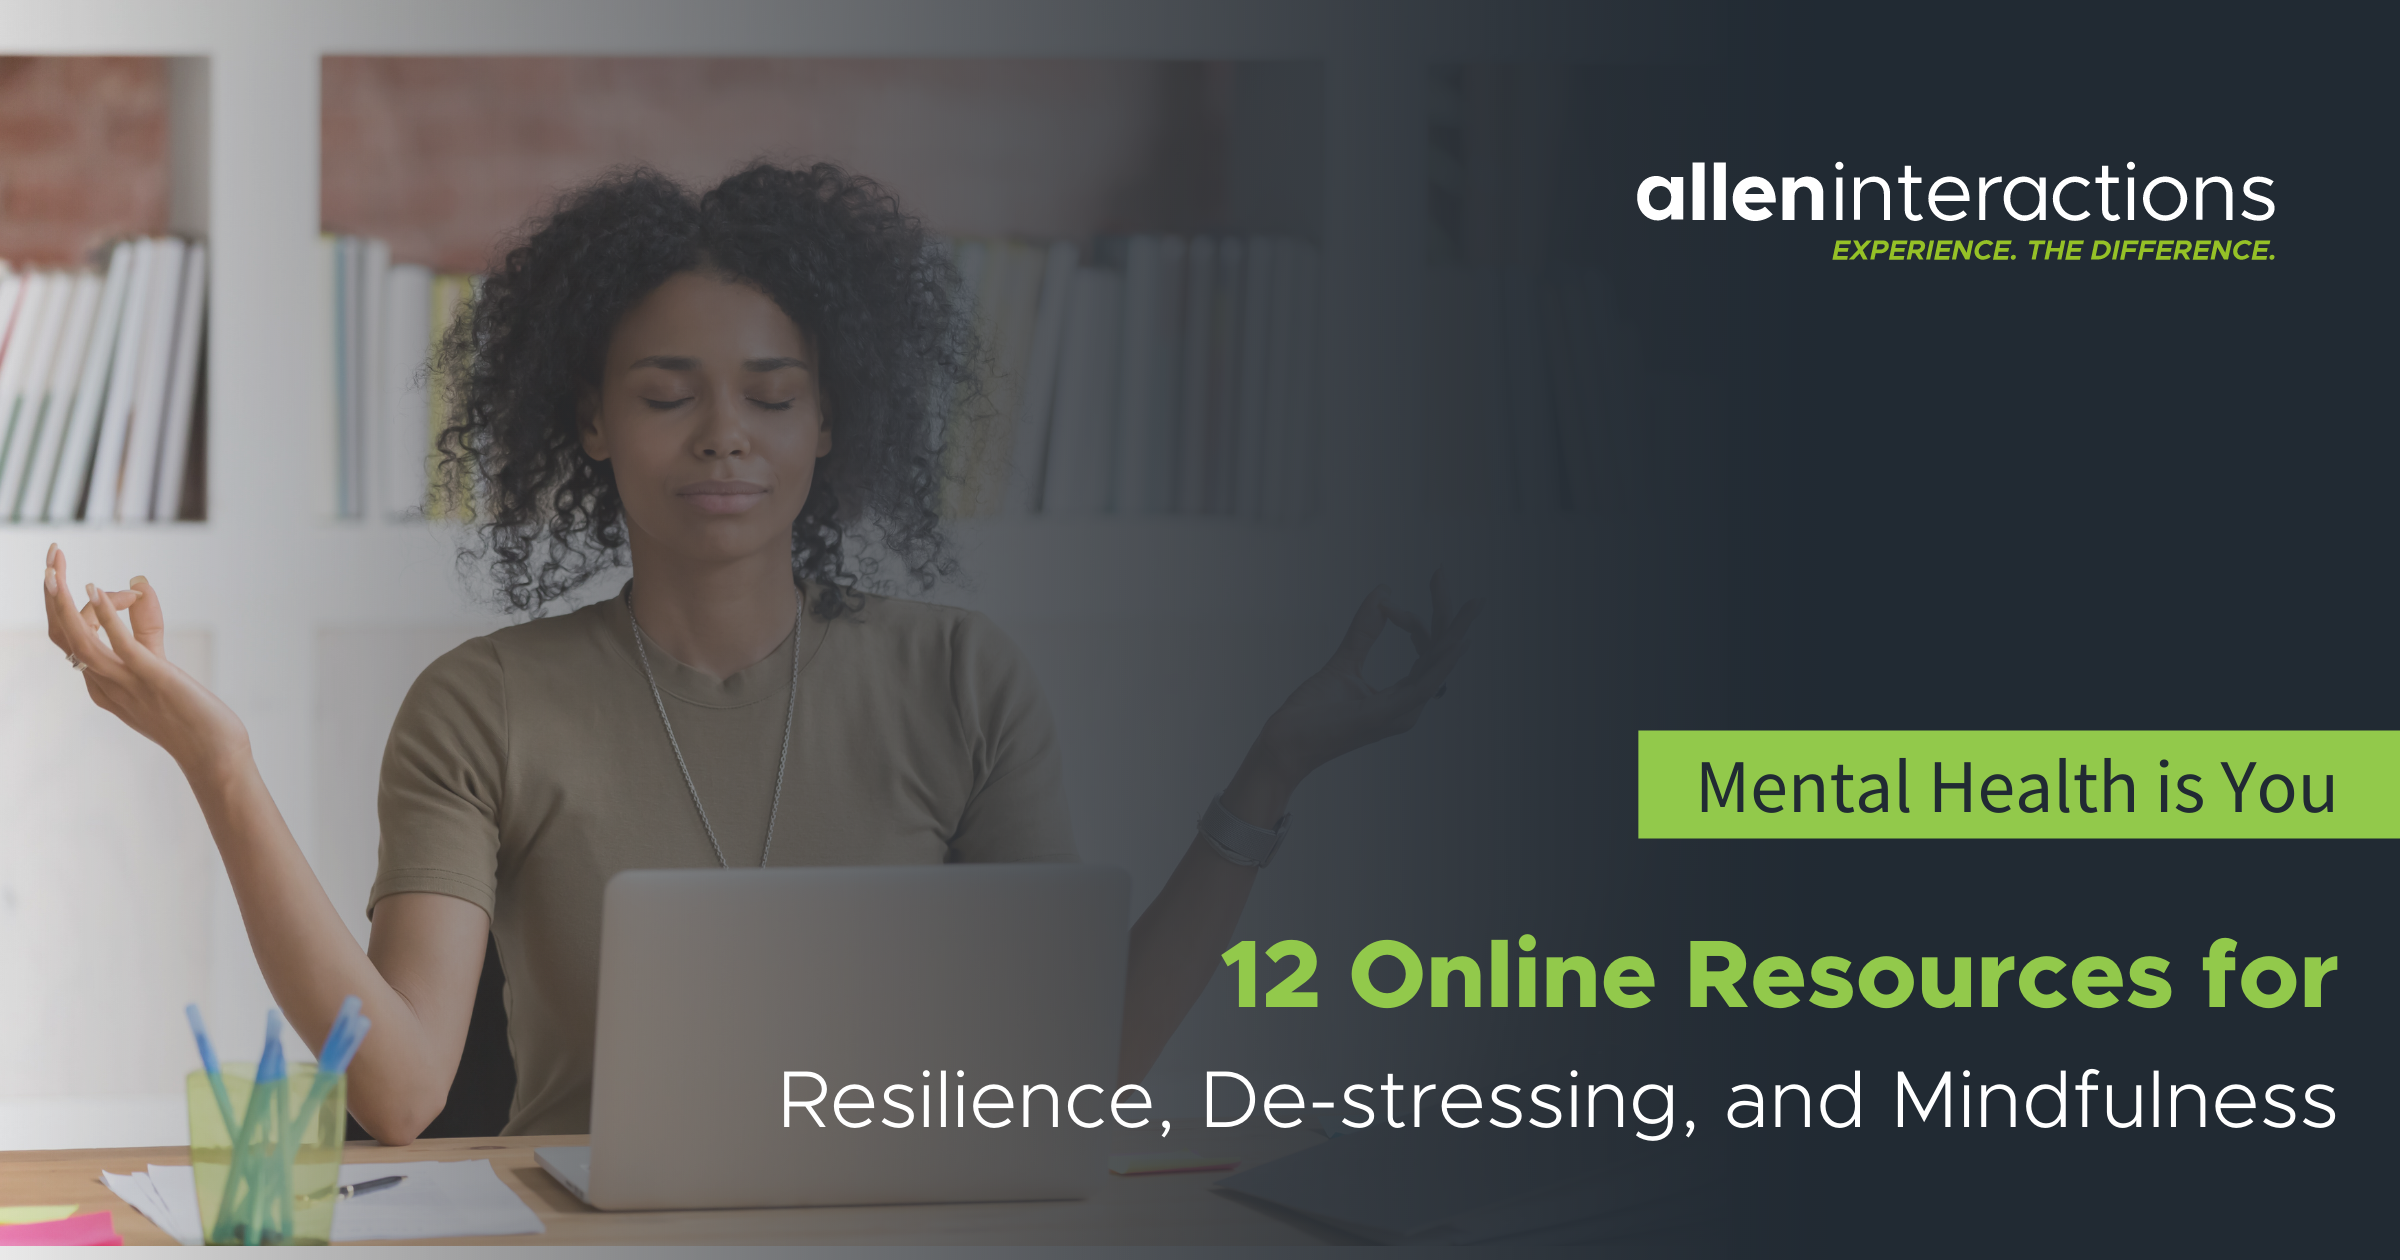 Mental Health is You - 12 Online Resources for Resilience, De-stressing, and Mindfulness